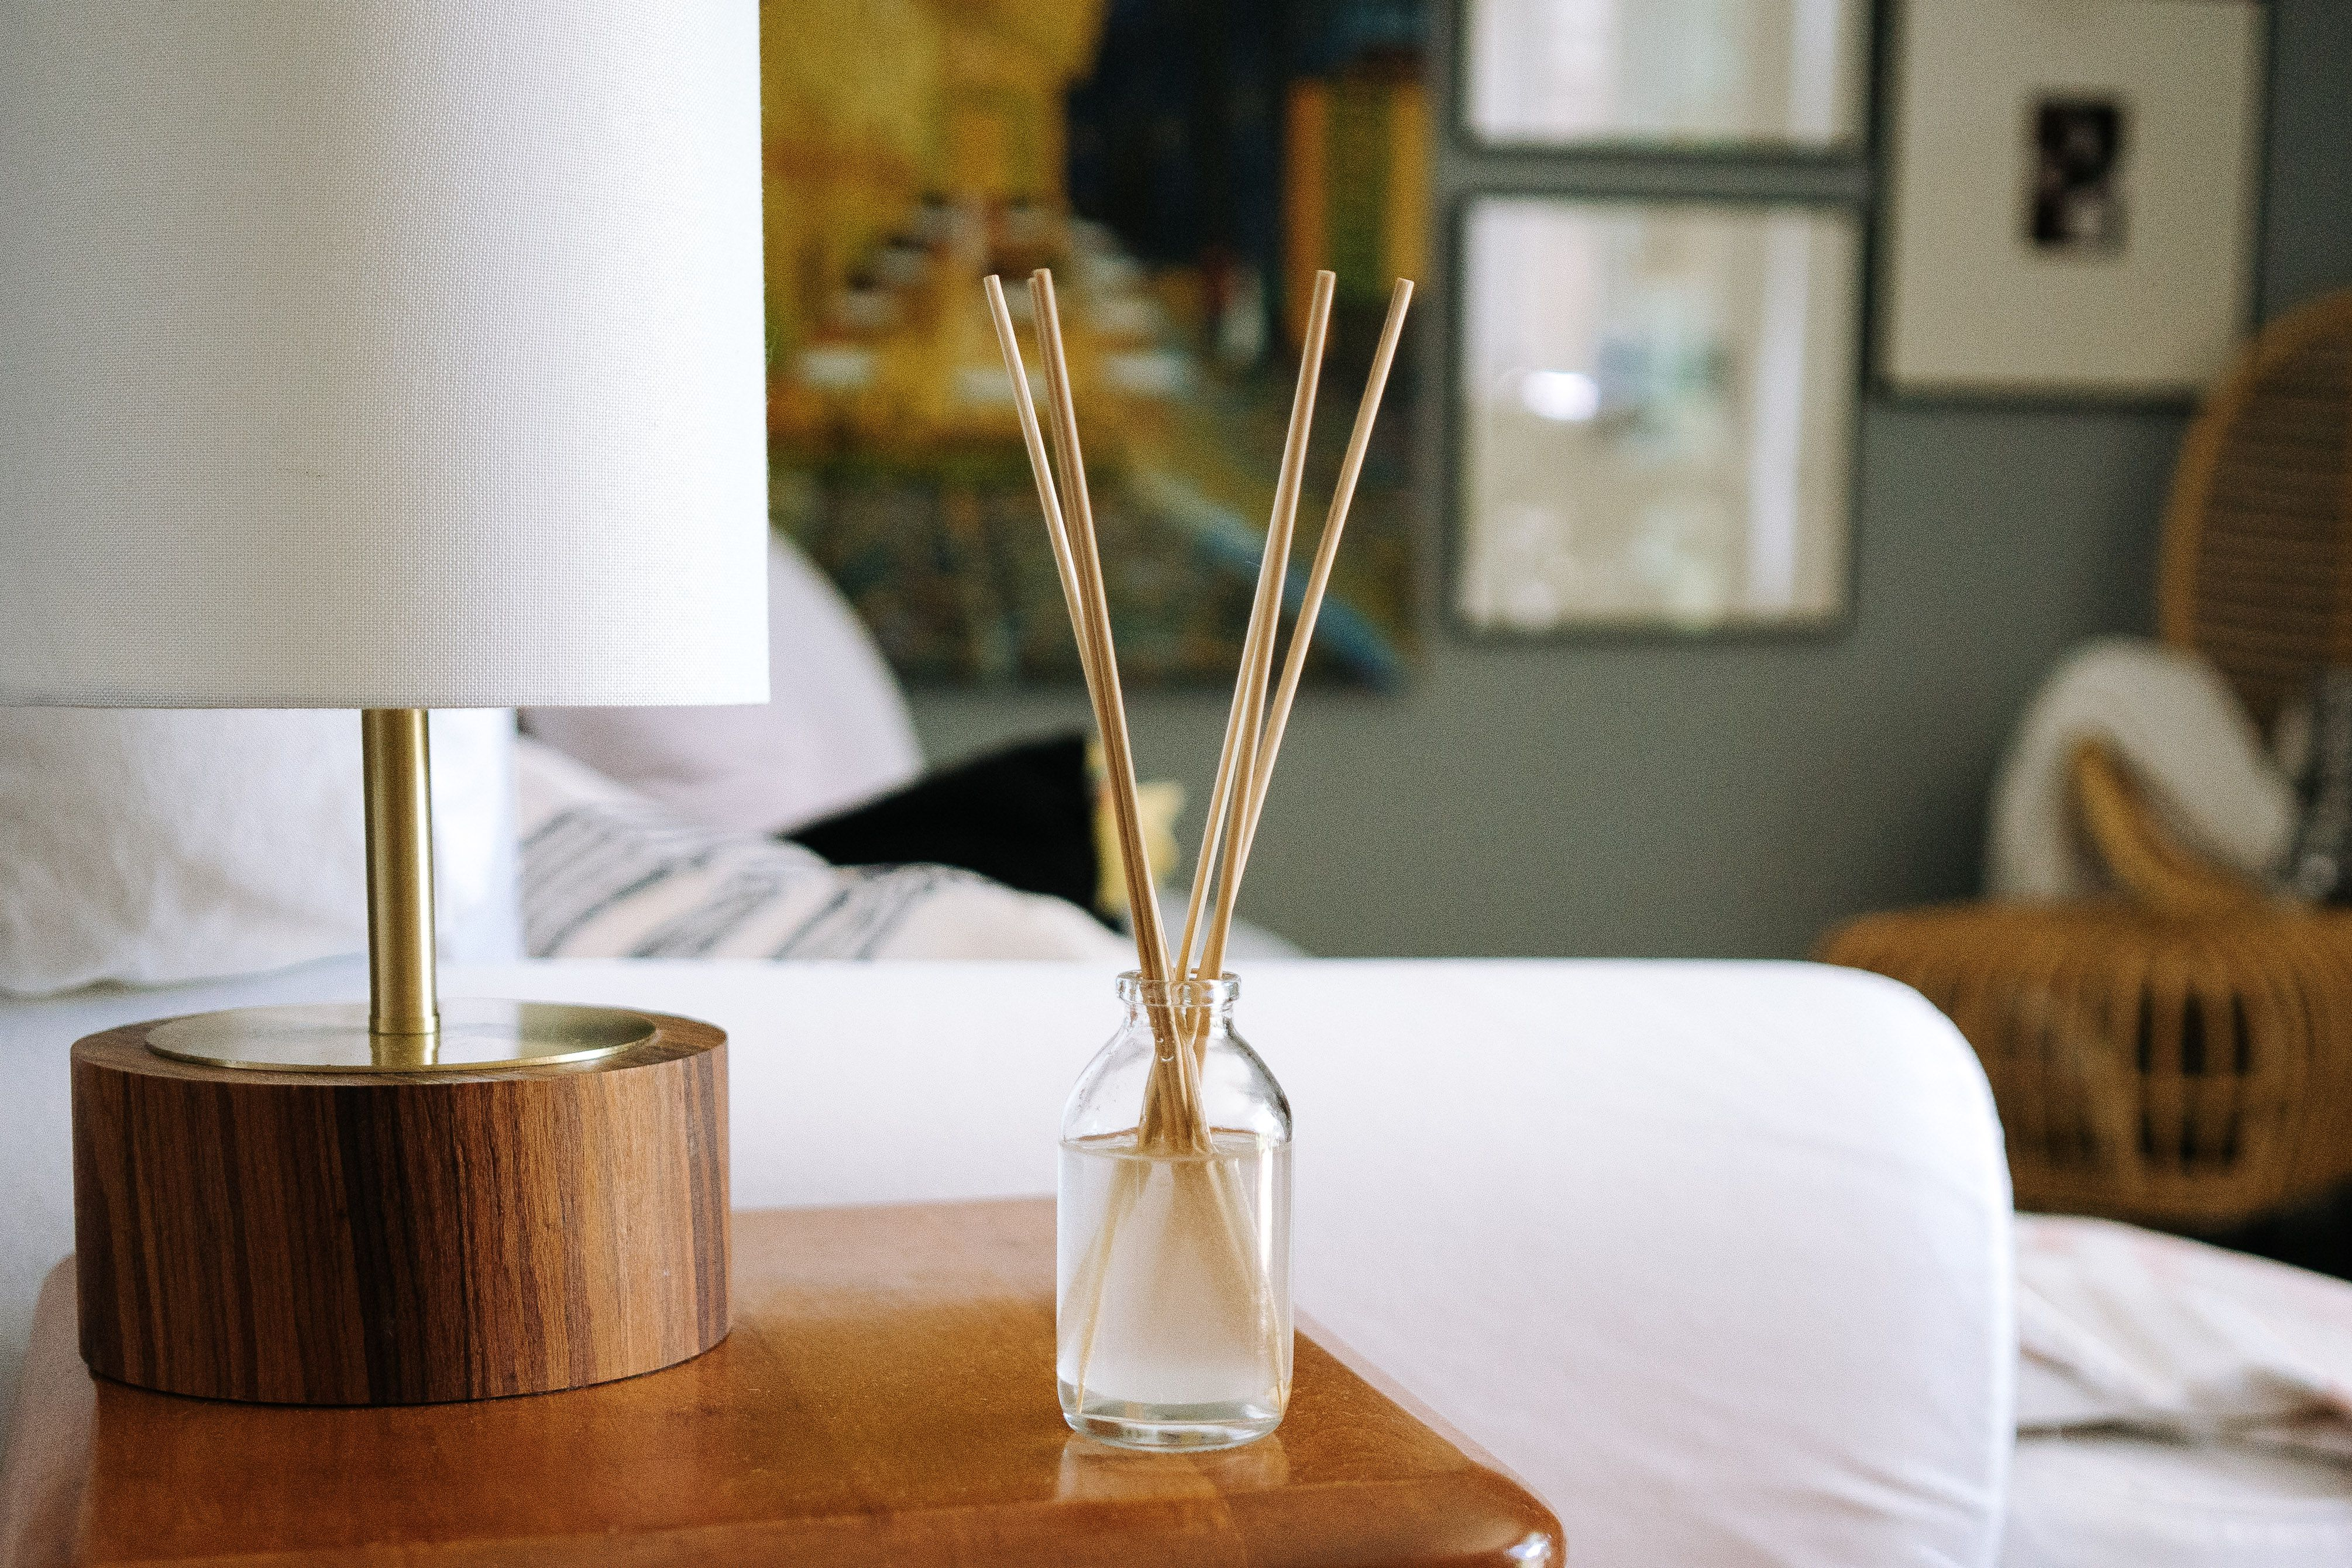 Make Your Own Room Diffuser